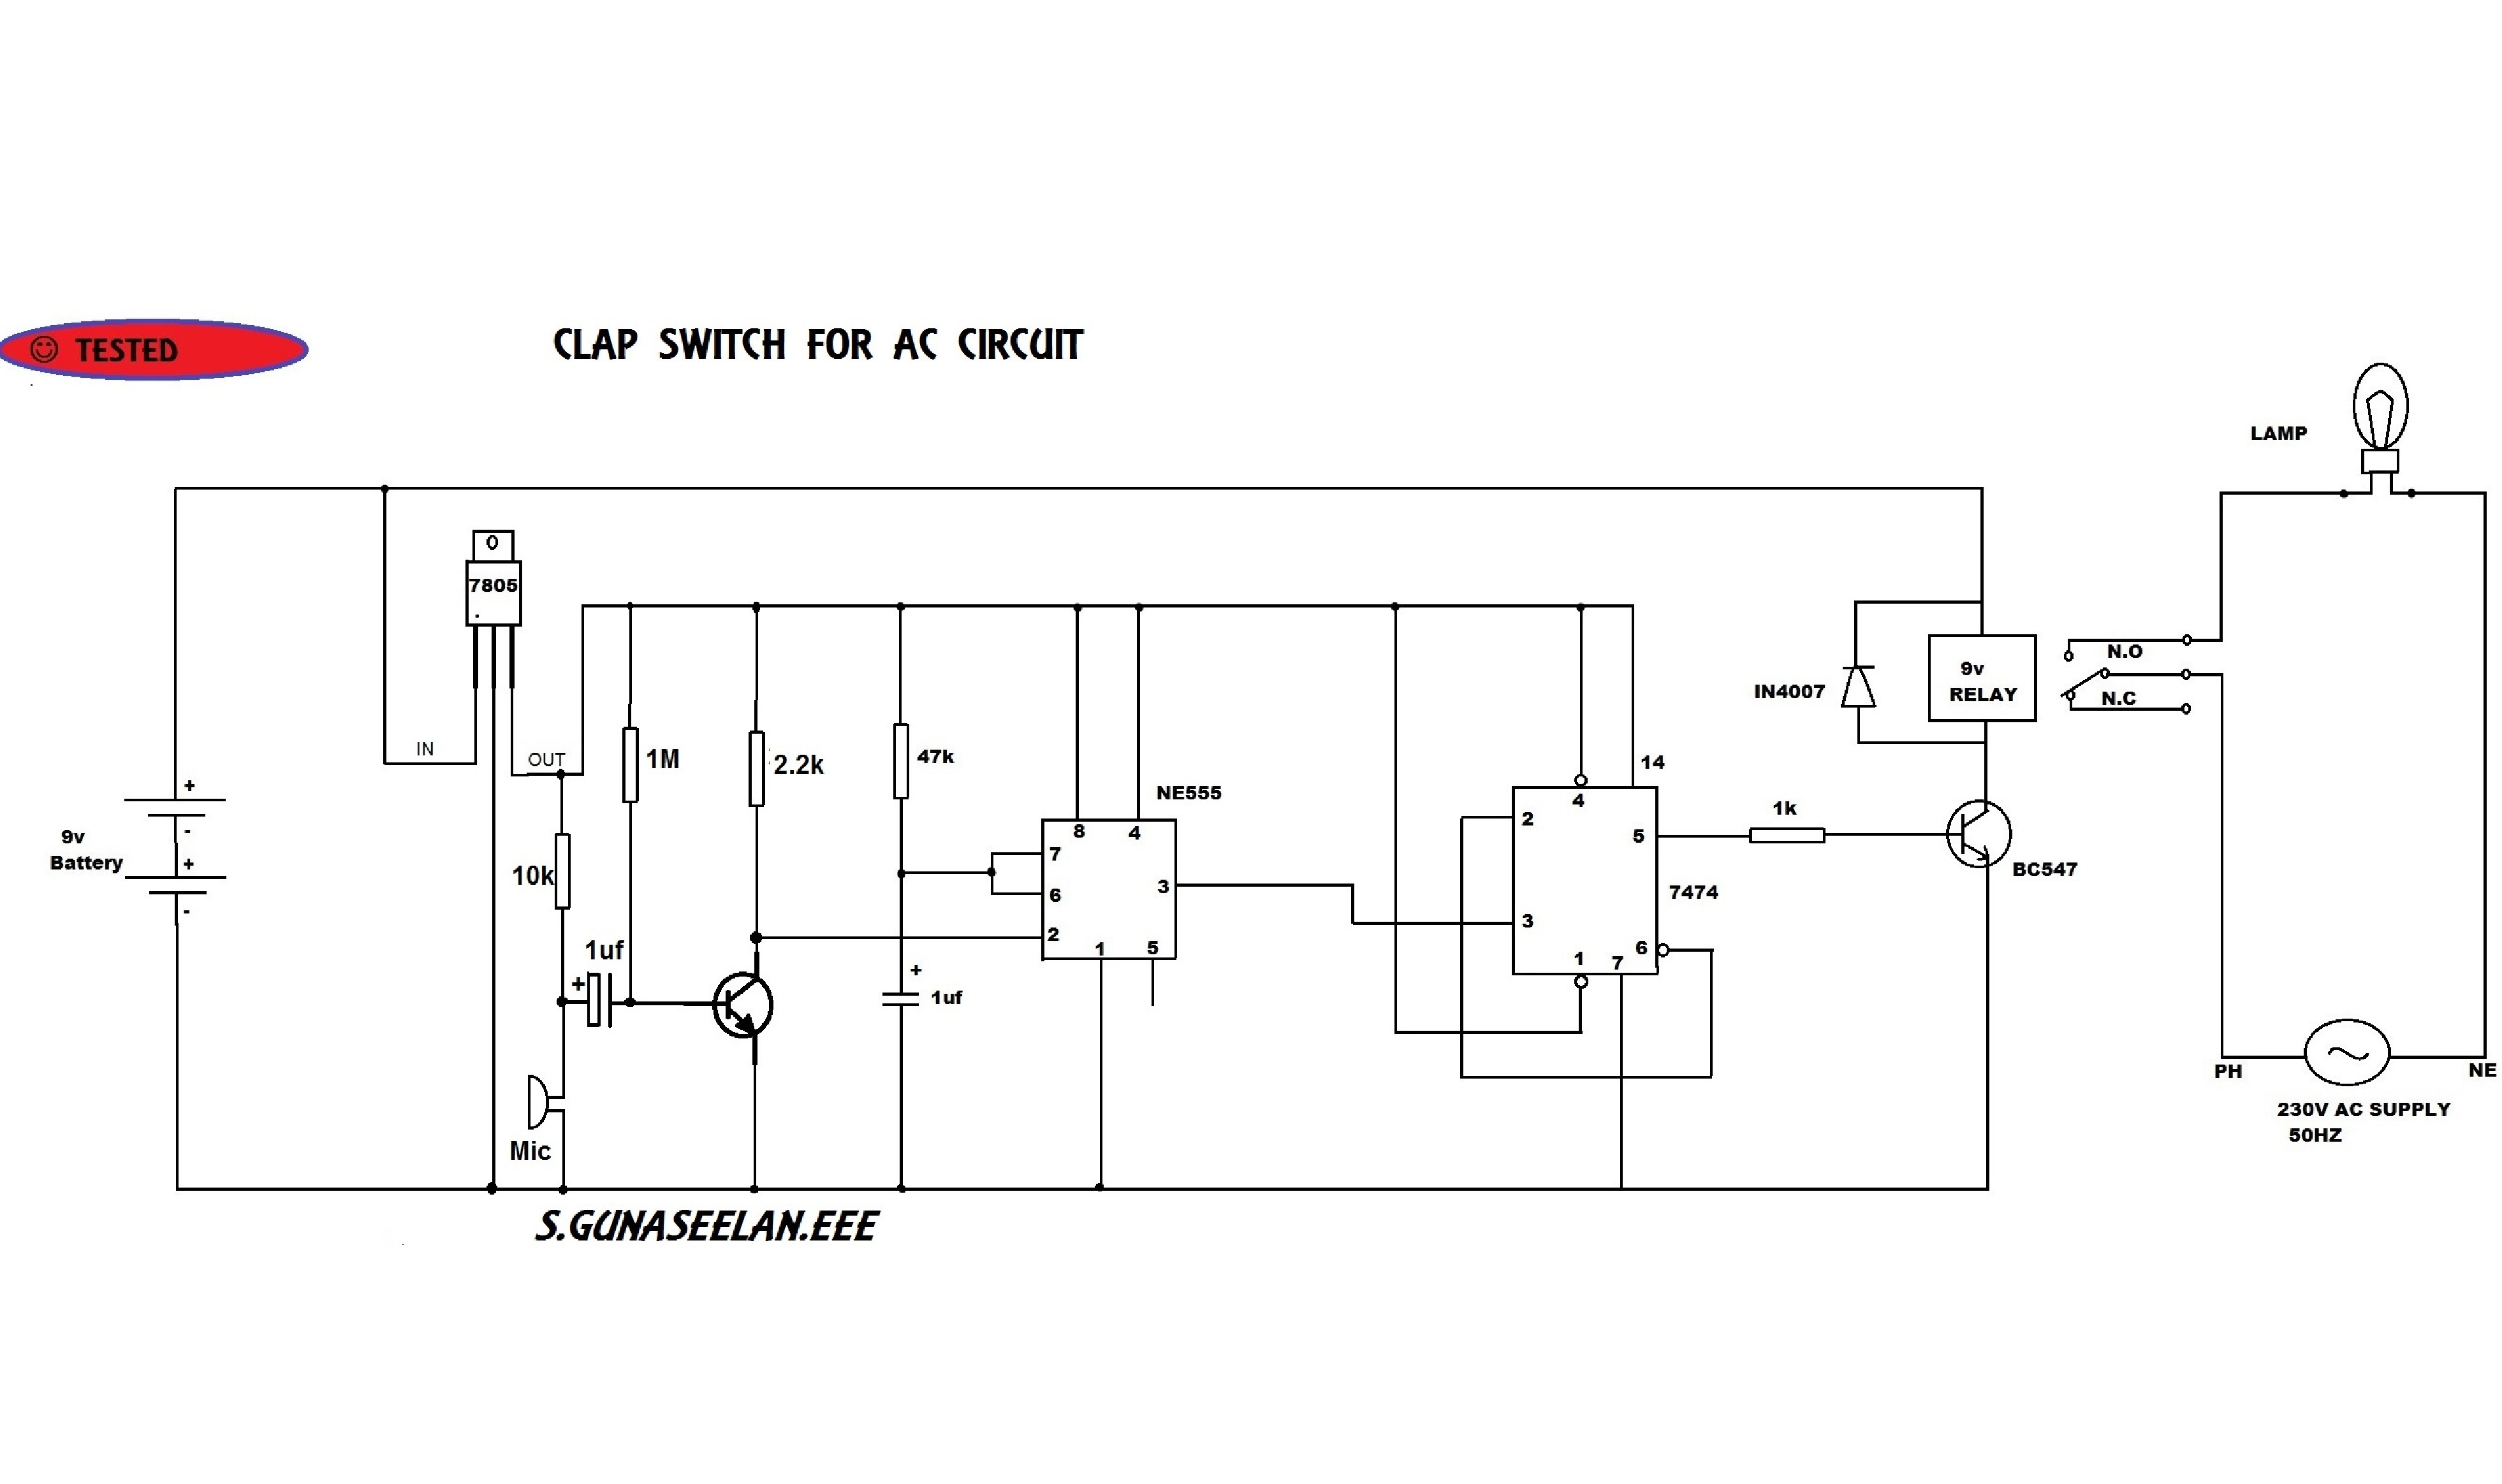 Gunacircuits Clap Switch Circuit Using Transistors Electronic Projects The Main Component Of This Is Electric Condenser Mic Which Has Been Used As A Sound Sensor